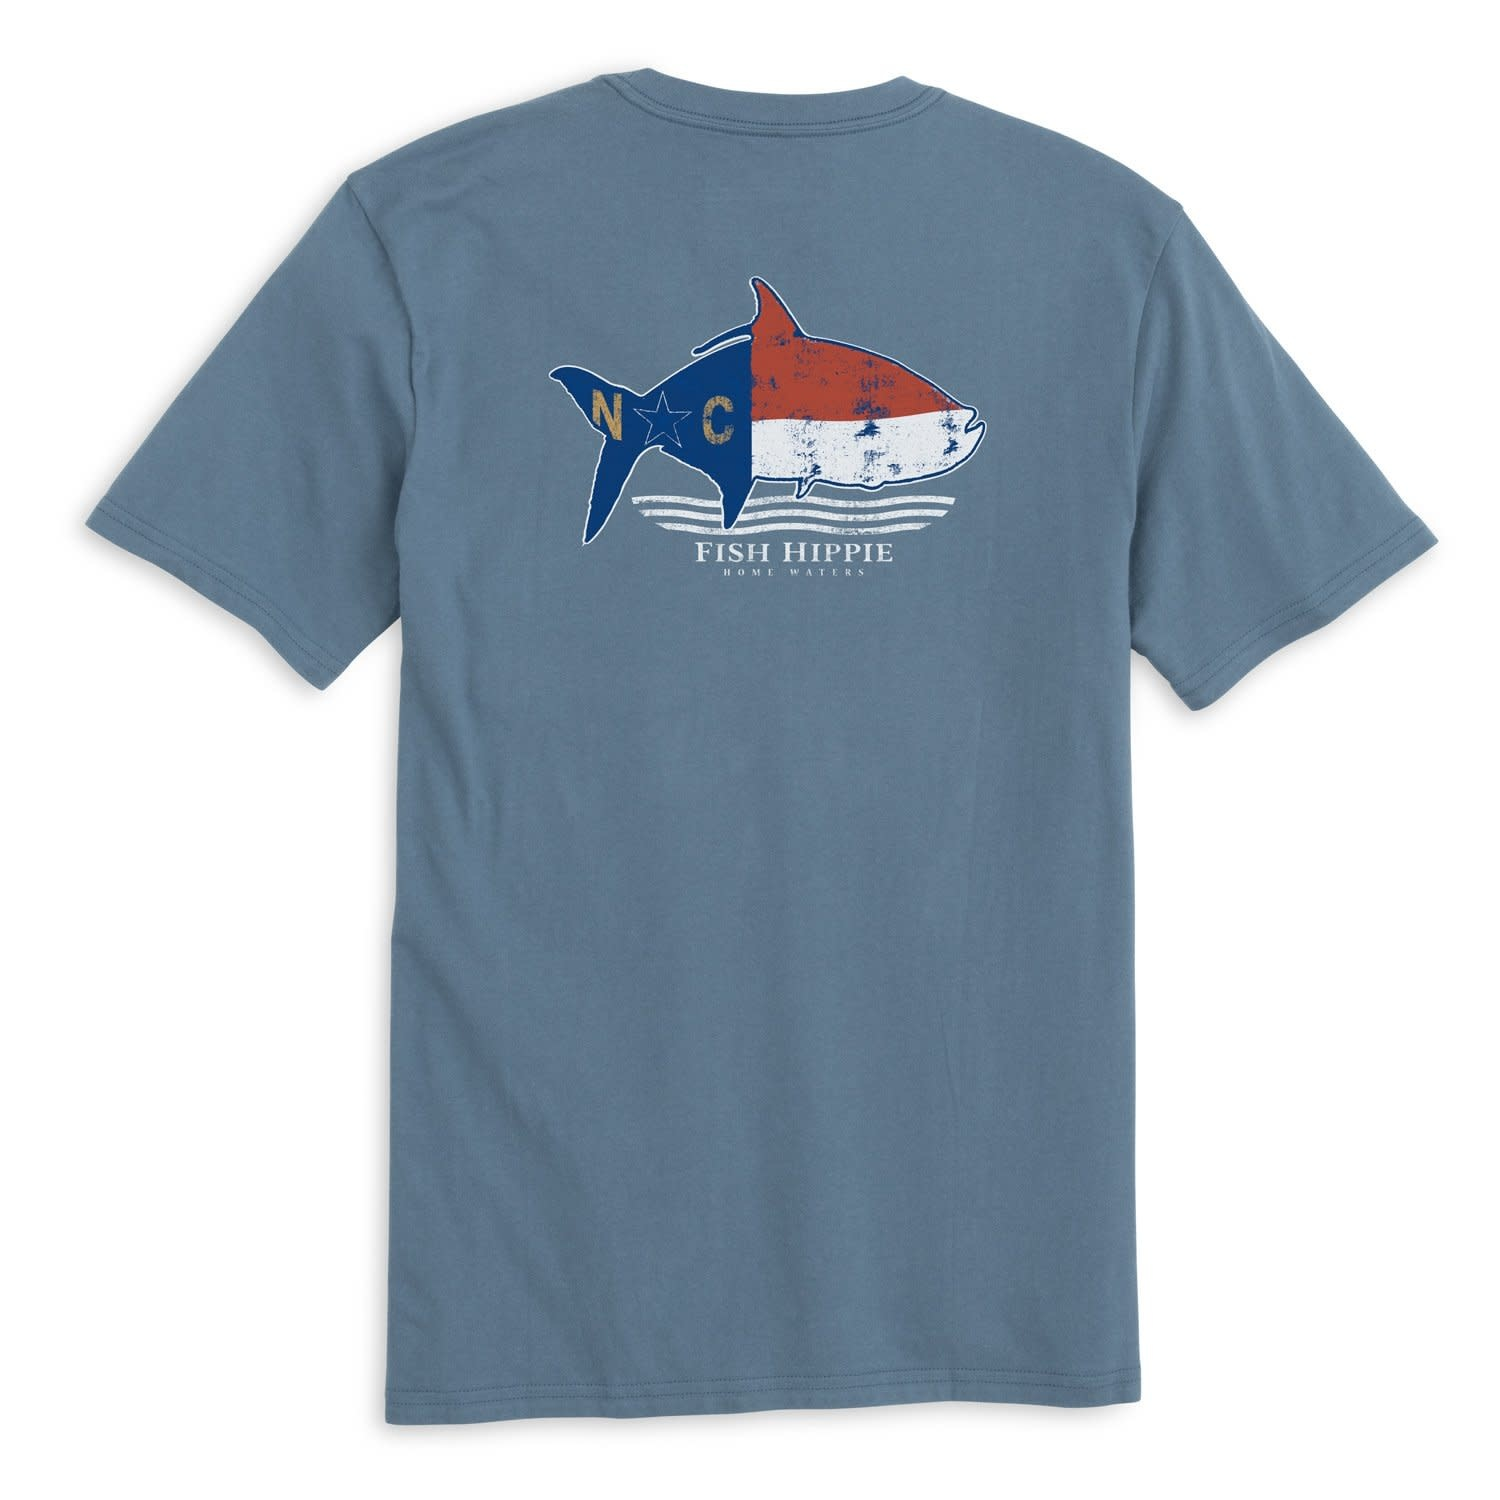 FISH HIPPIE NORTH CAROLINA STATE SHIRT